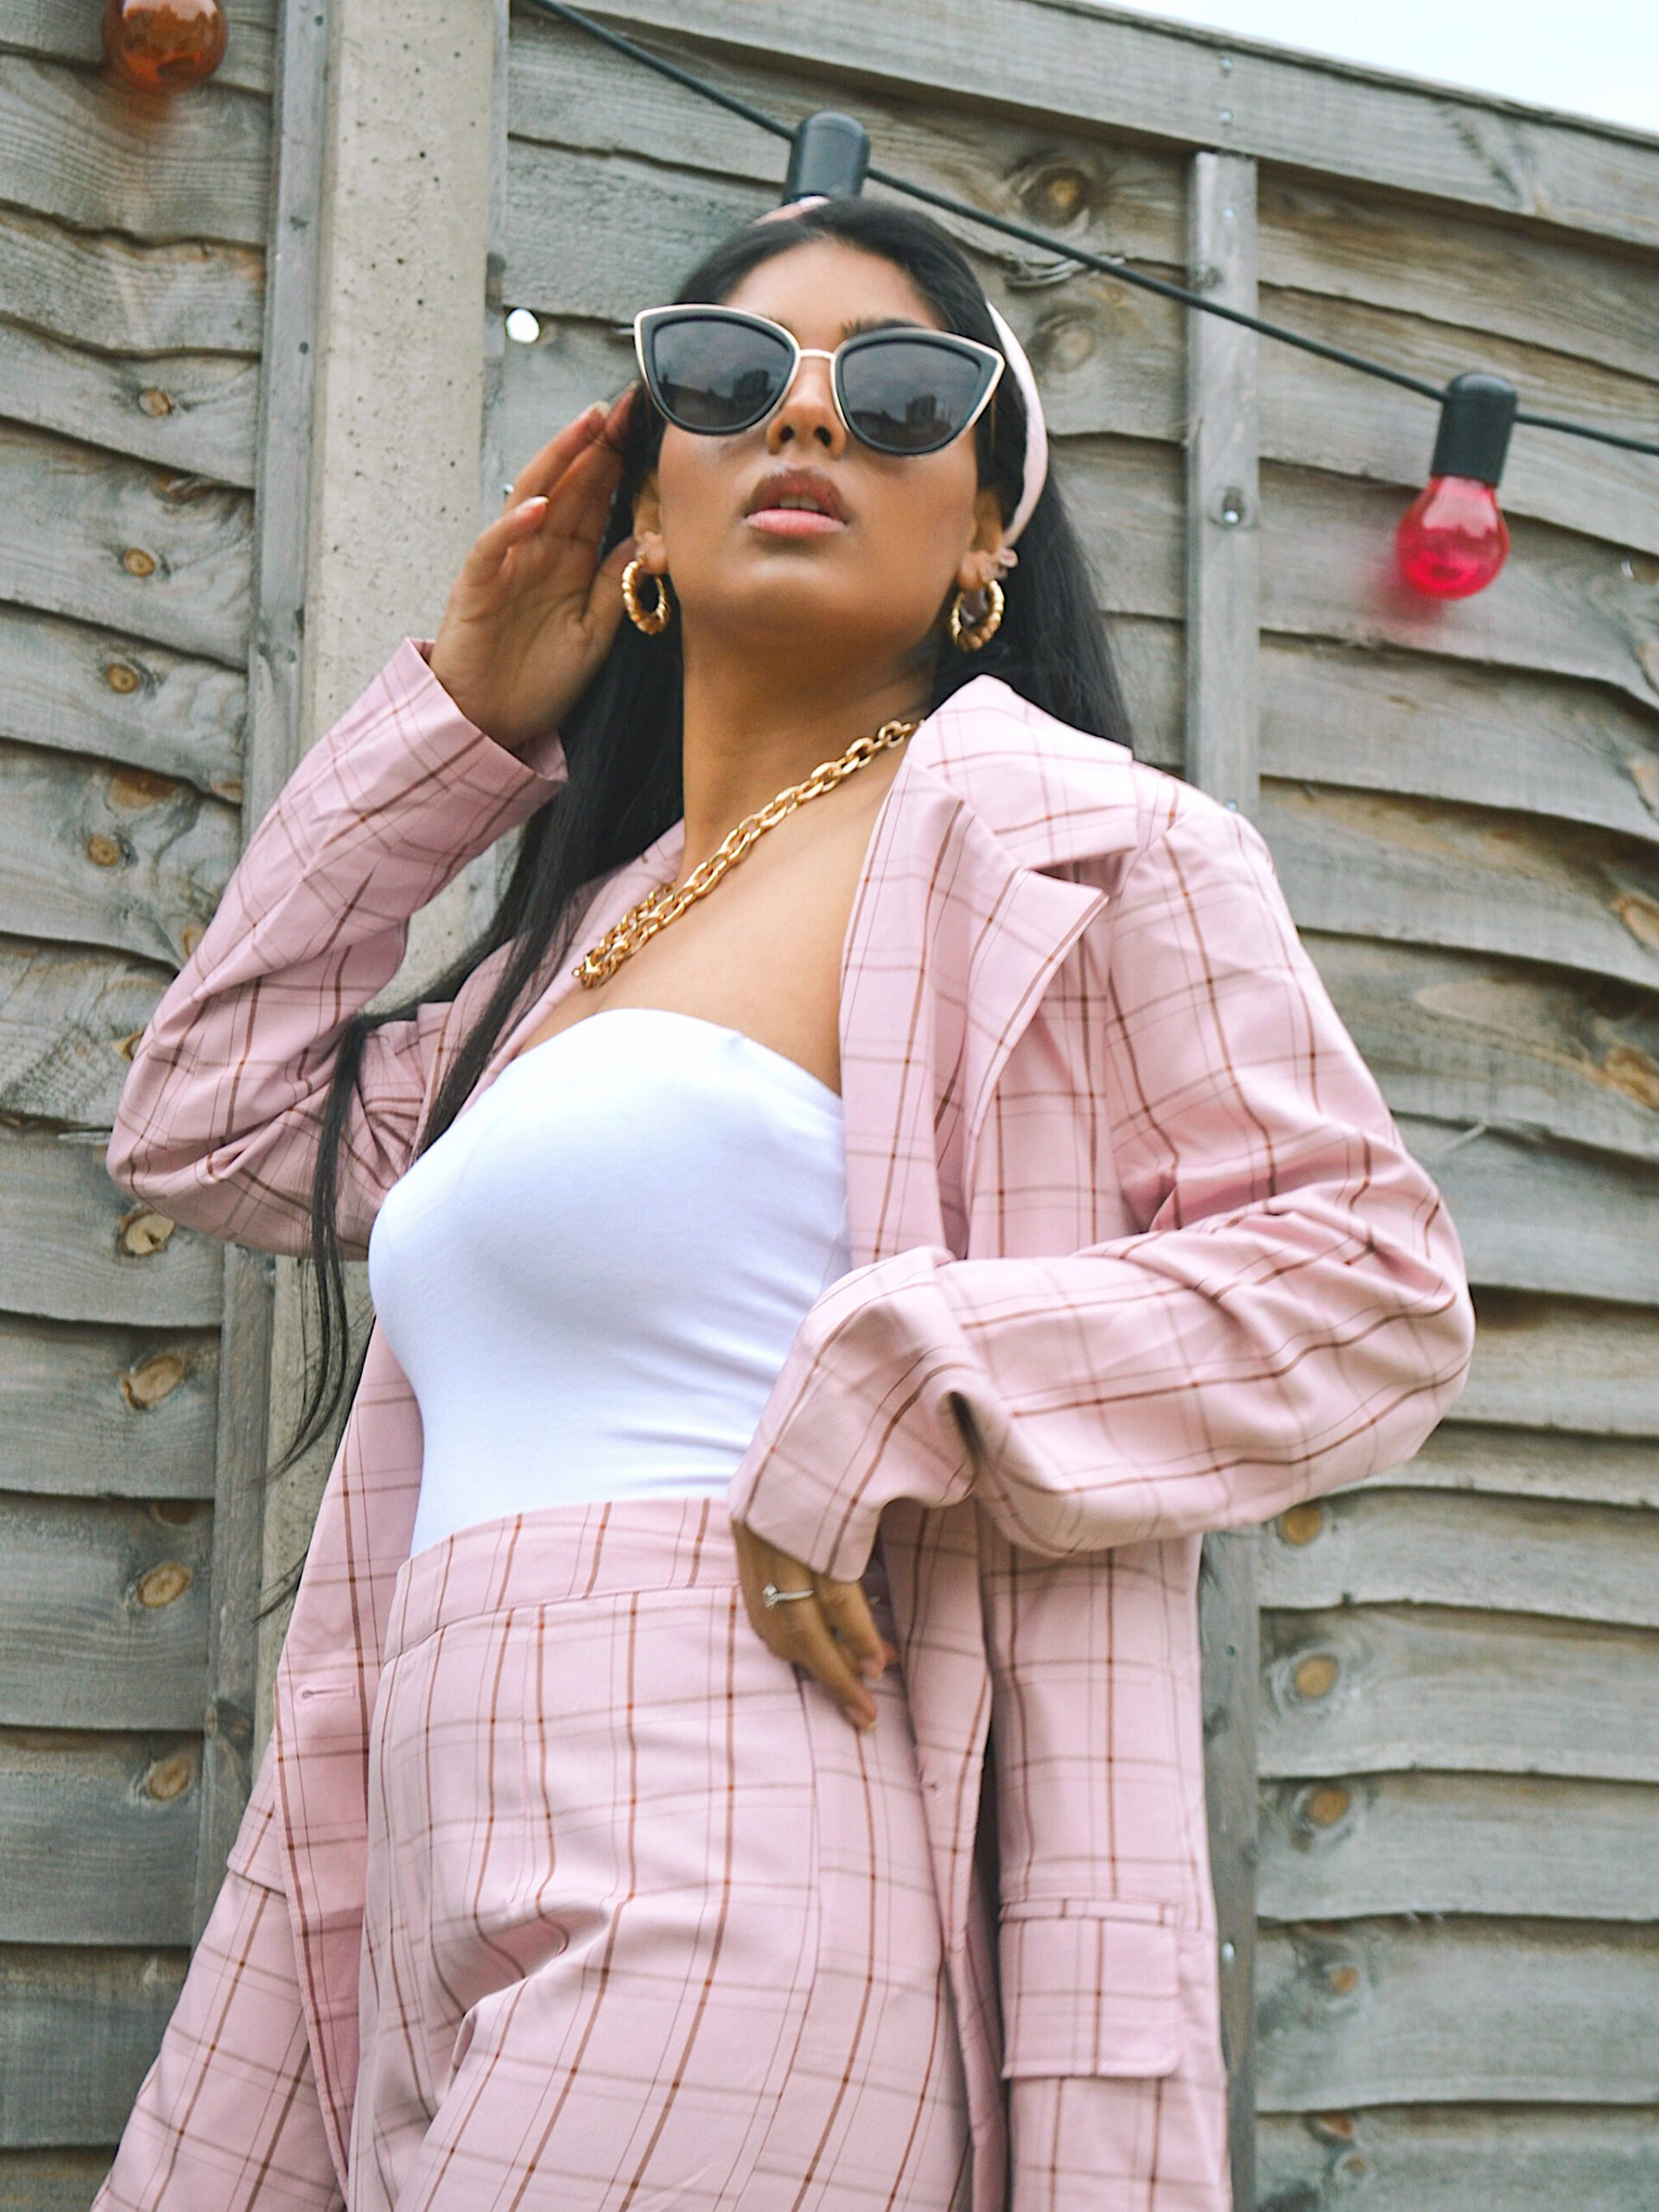 A brown blogger sharing her tips on how she style chic outfits, dressed in a pink checked pant suit.